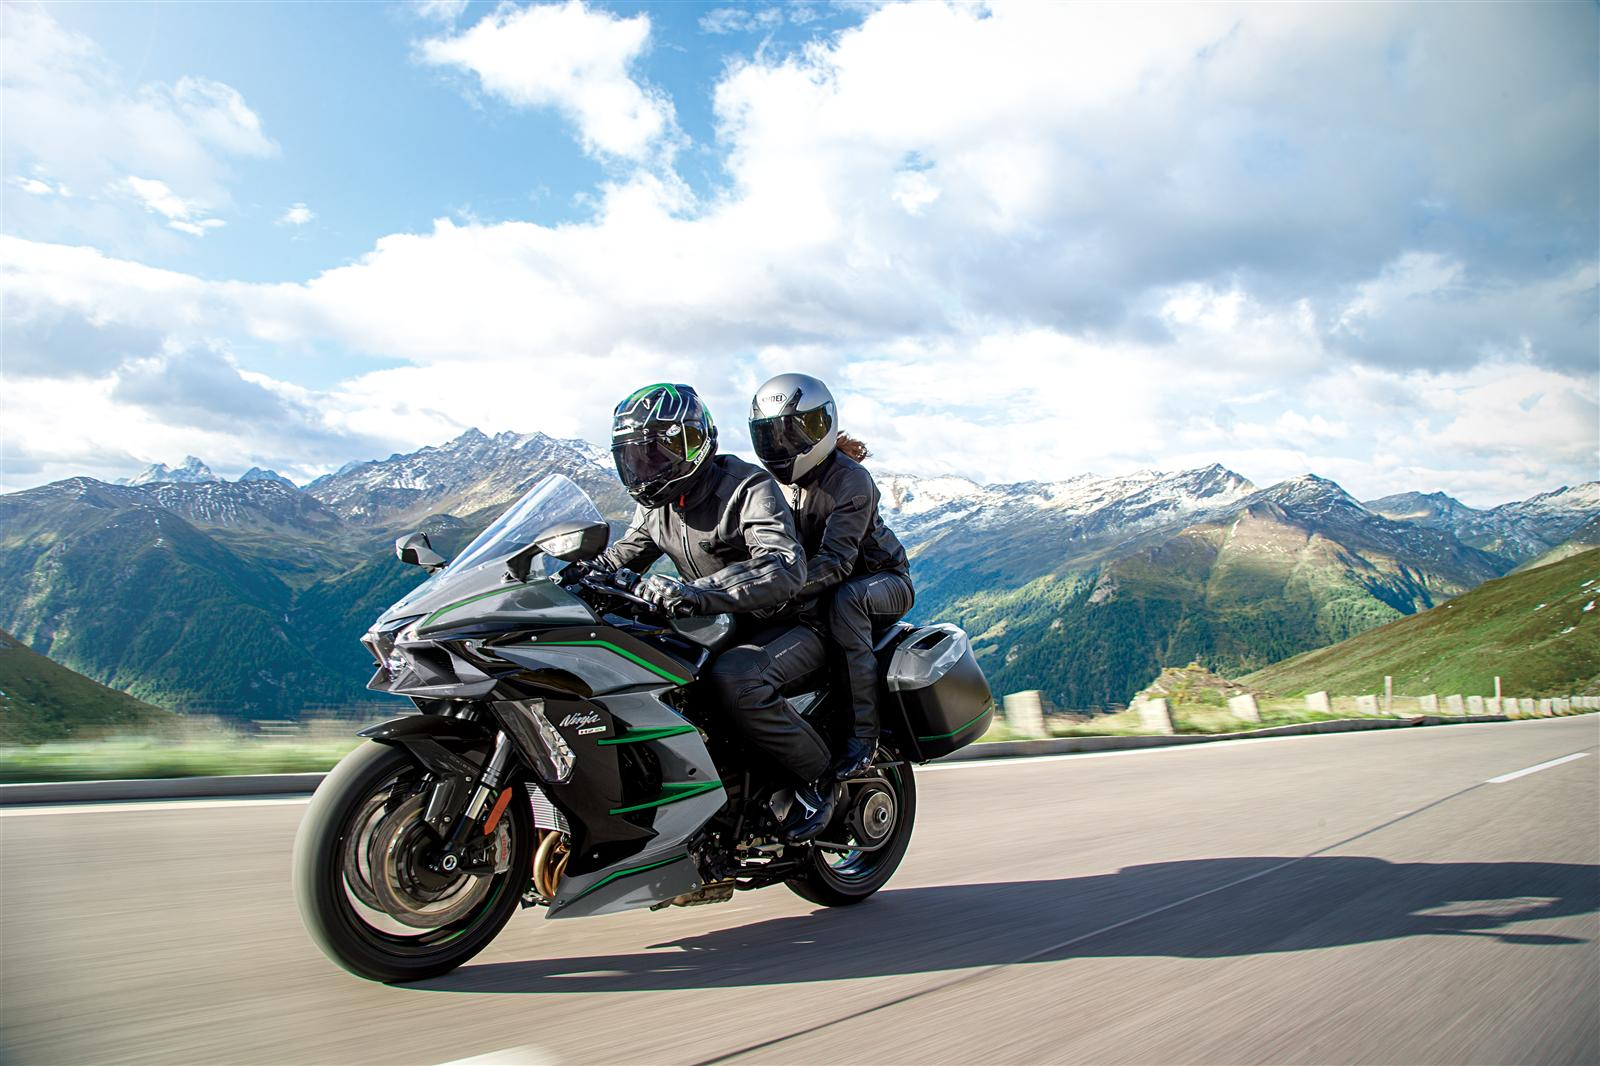 Hyper Touring Pinnacle Targeted By New Ninja H2 SX SE+